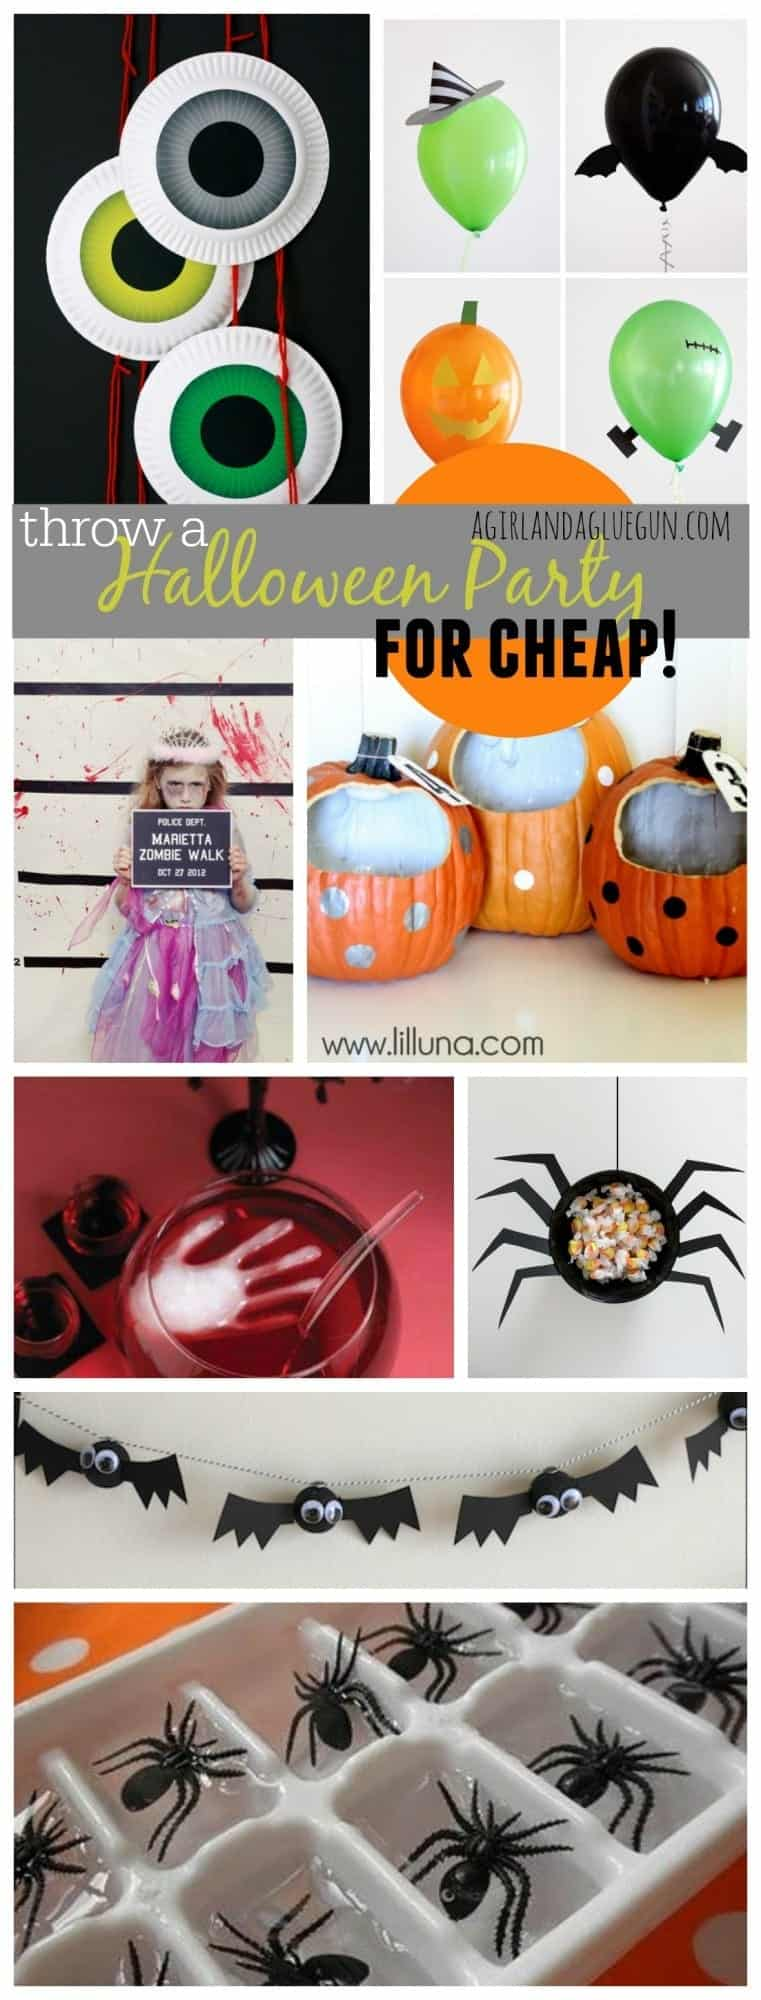 throw-a-halloween-party-for-cheap-easy-and-fun-ideas-that-wont-break-the-bank-761x2000